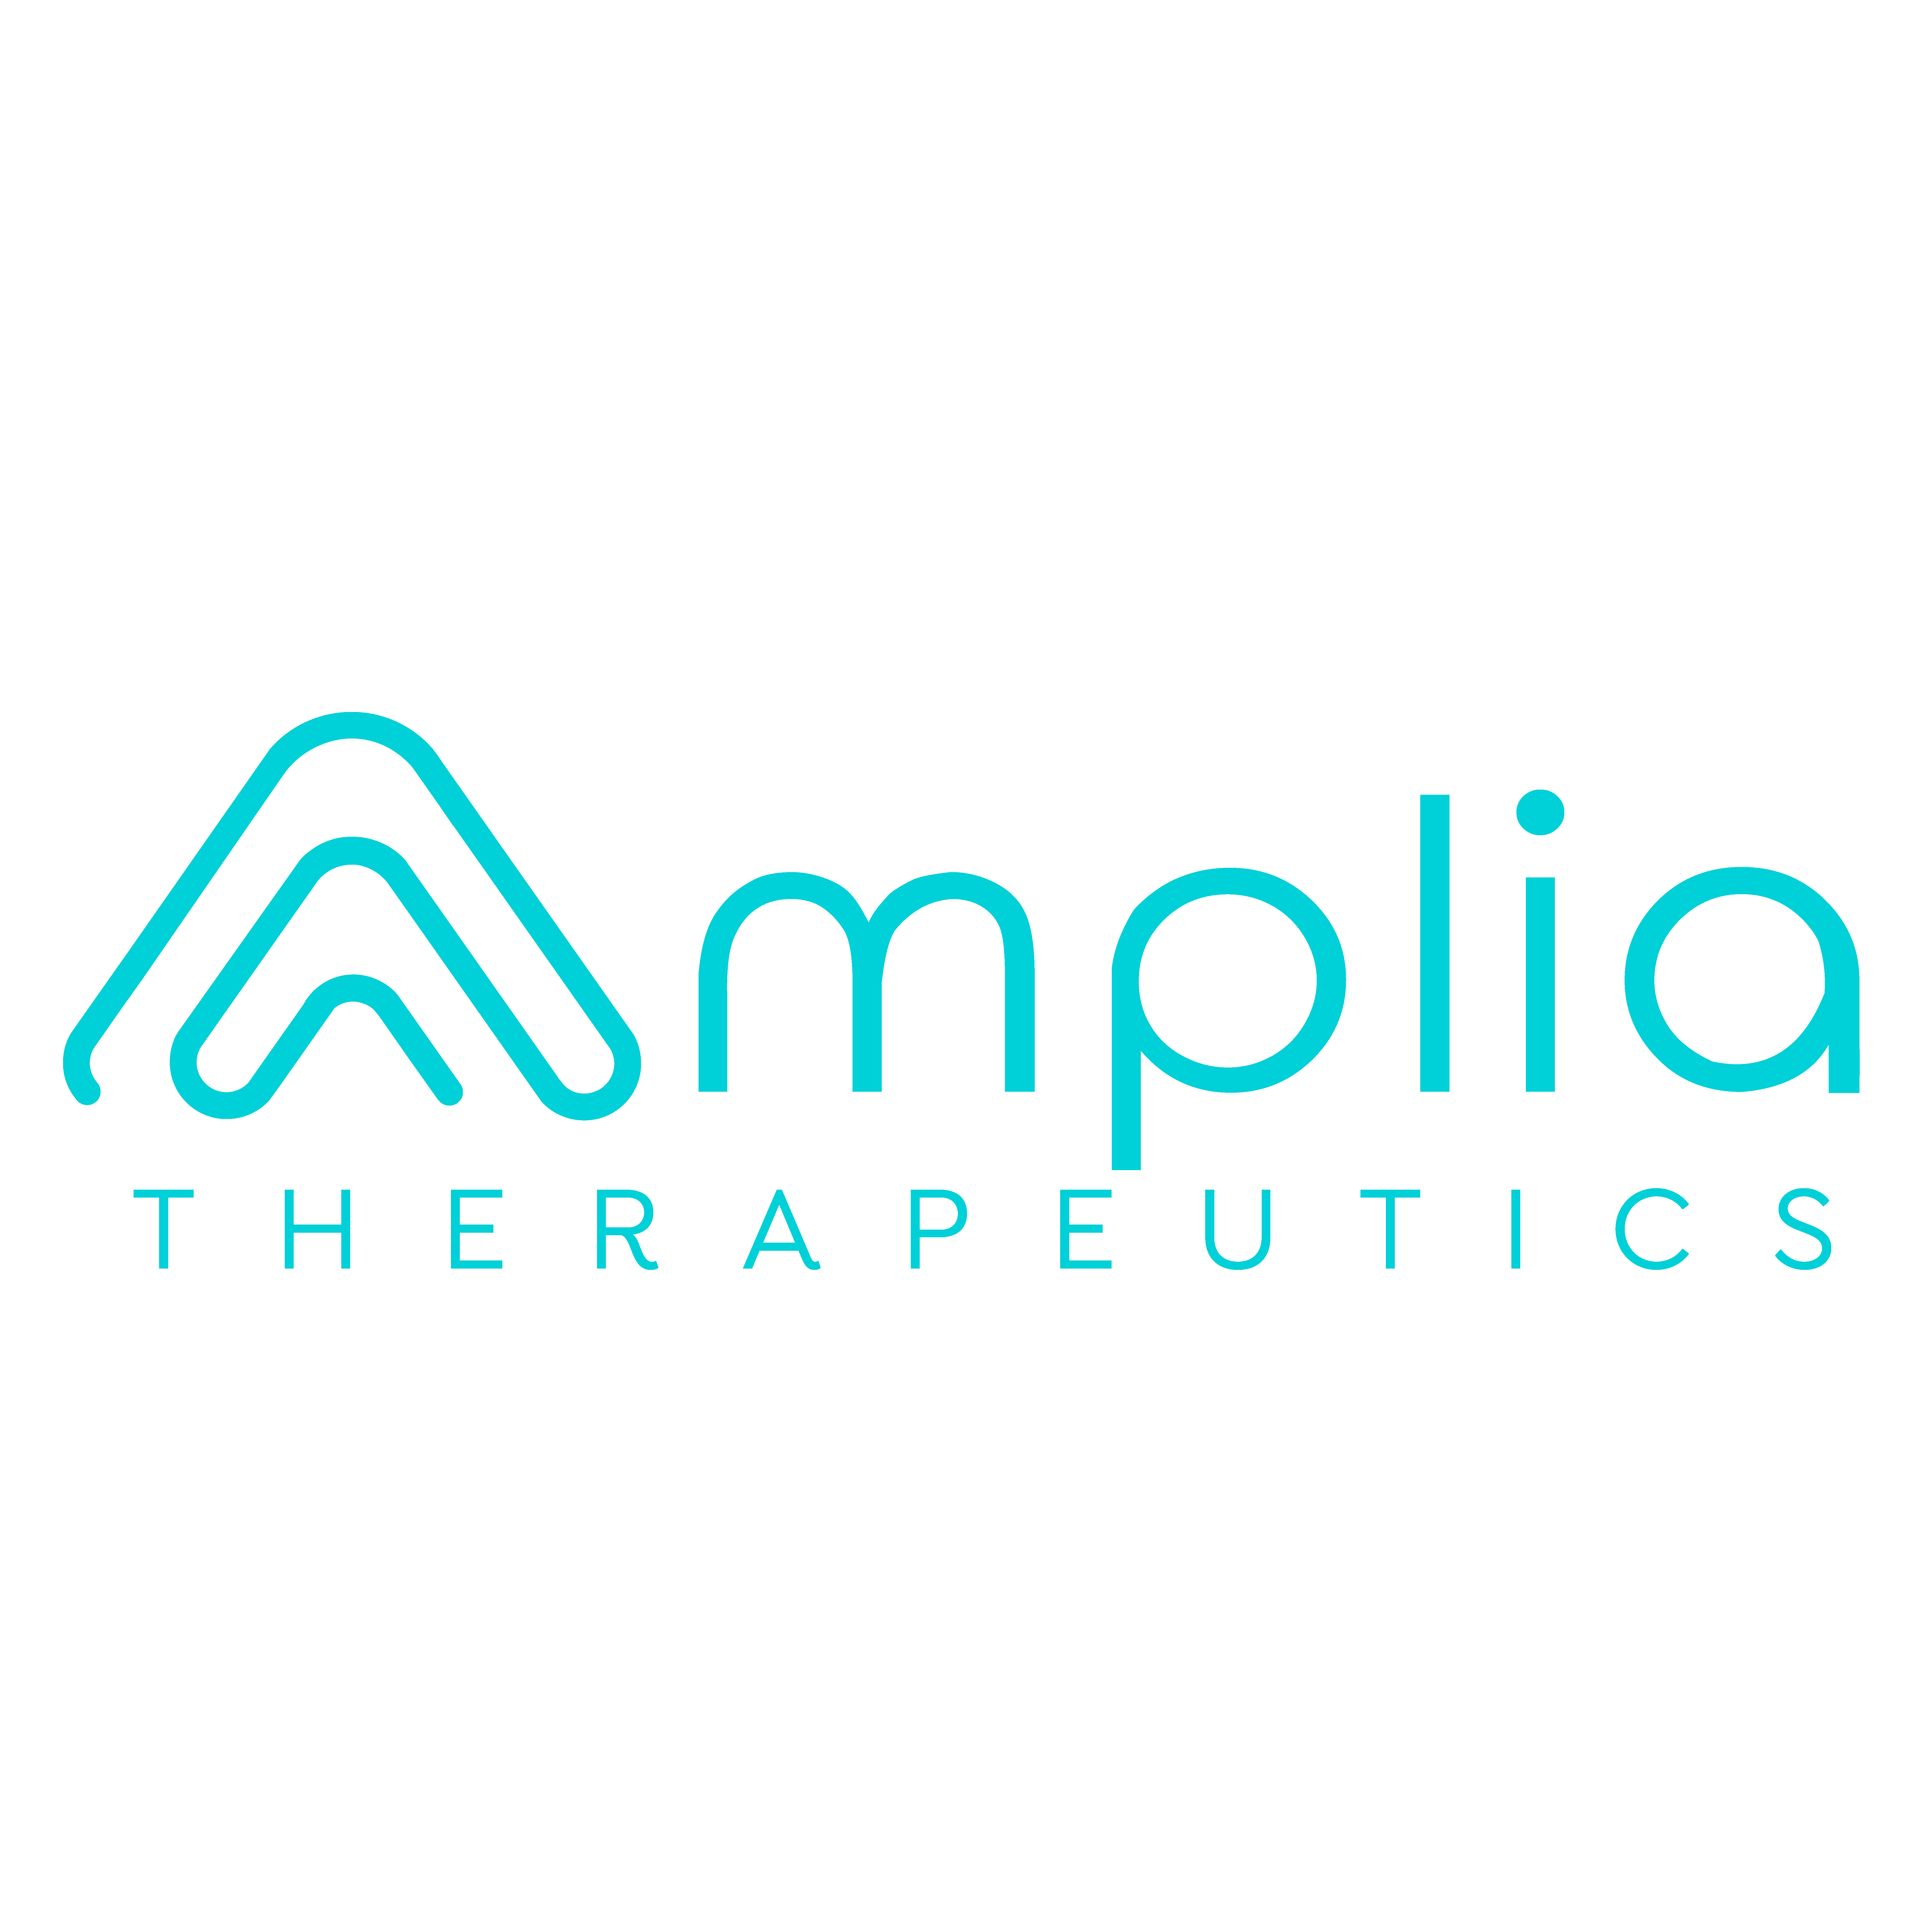 AMPLIA THERAPEUTICS LIMITED